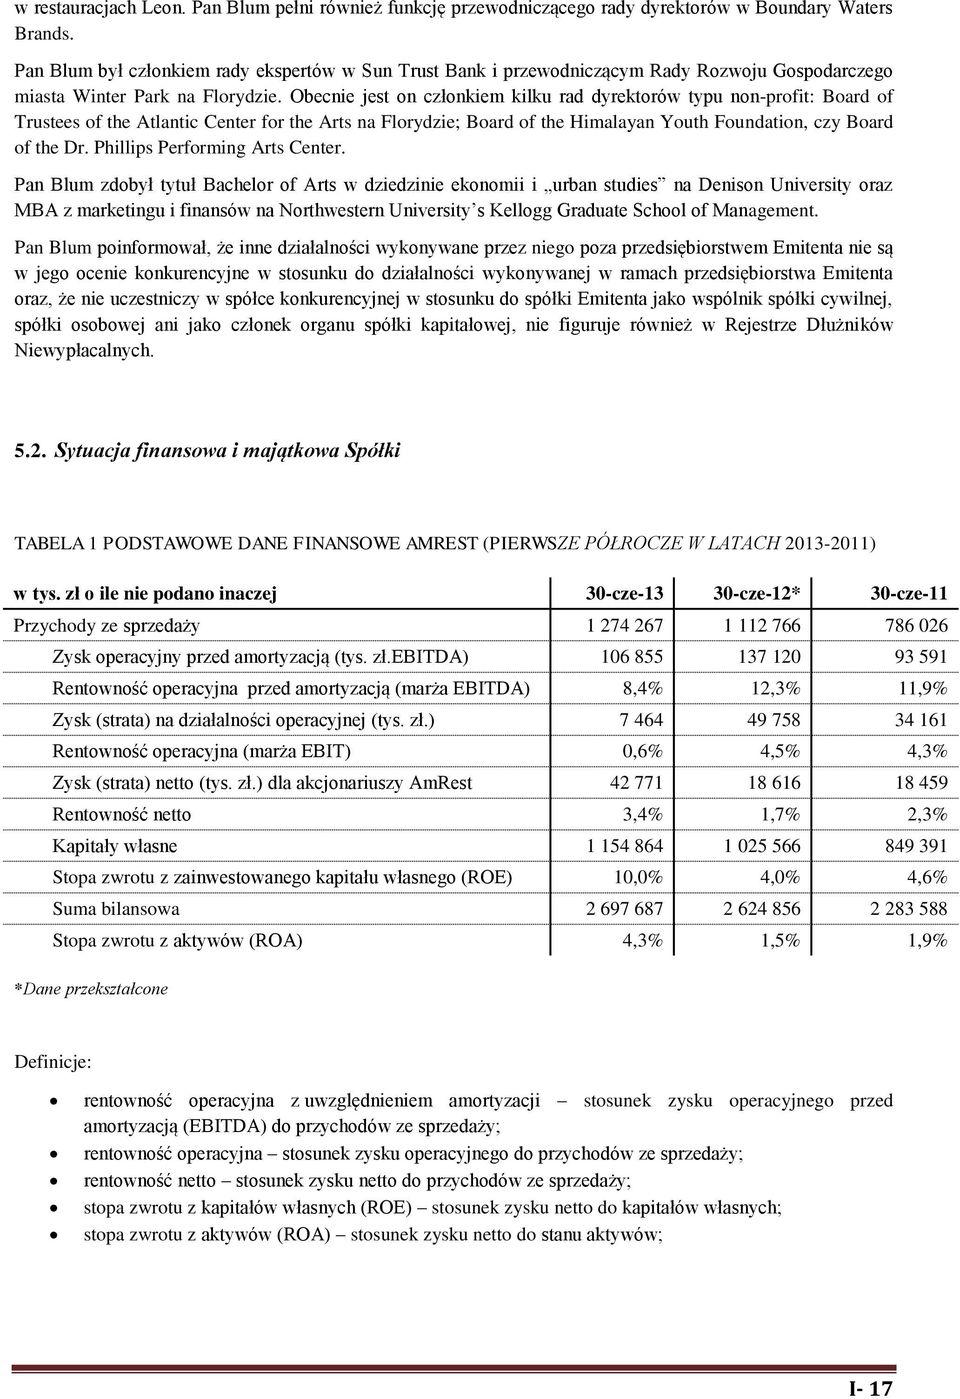 Obecnie jest on członkiem kilku rad dyrektorów typu non-profit: Board of Trustees of the Atlantic Center for the Arts na Florydzie; Board of the Himalayan Youth Foundation, czy Board of the Dr.